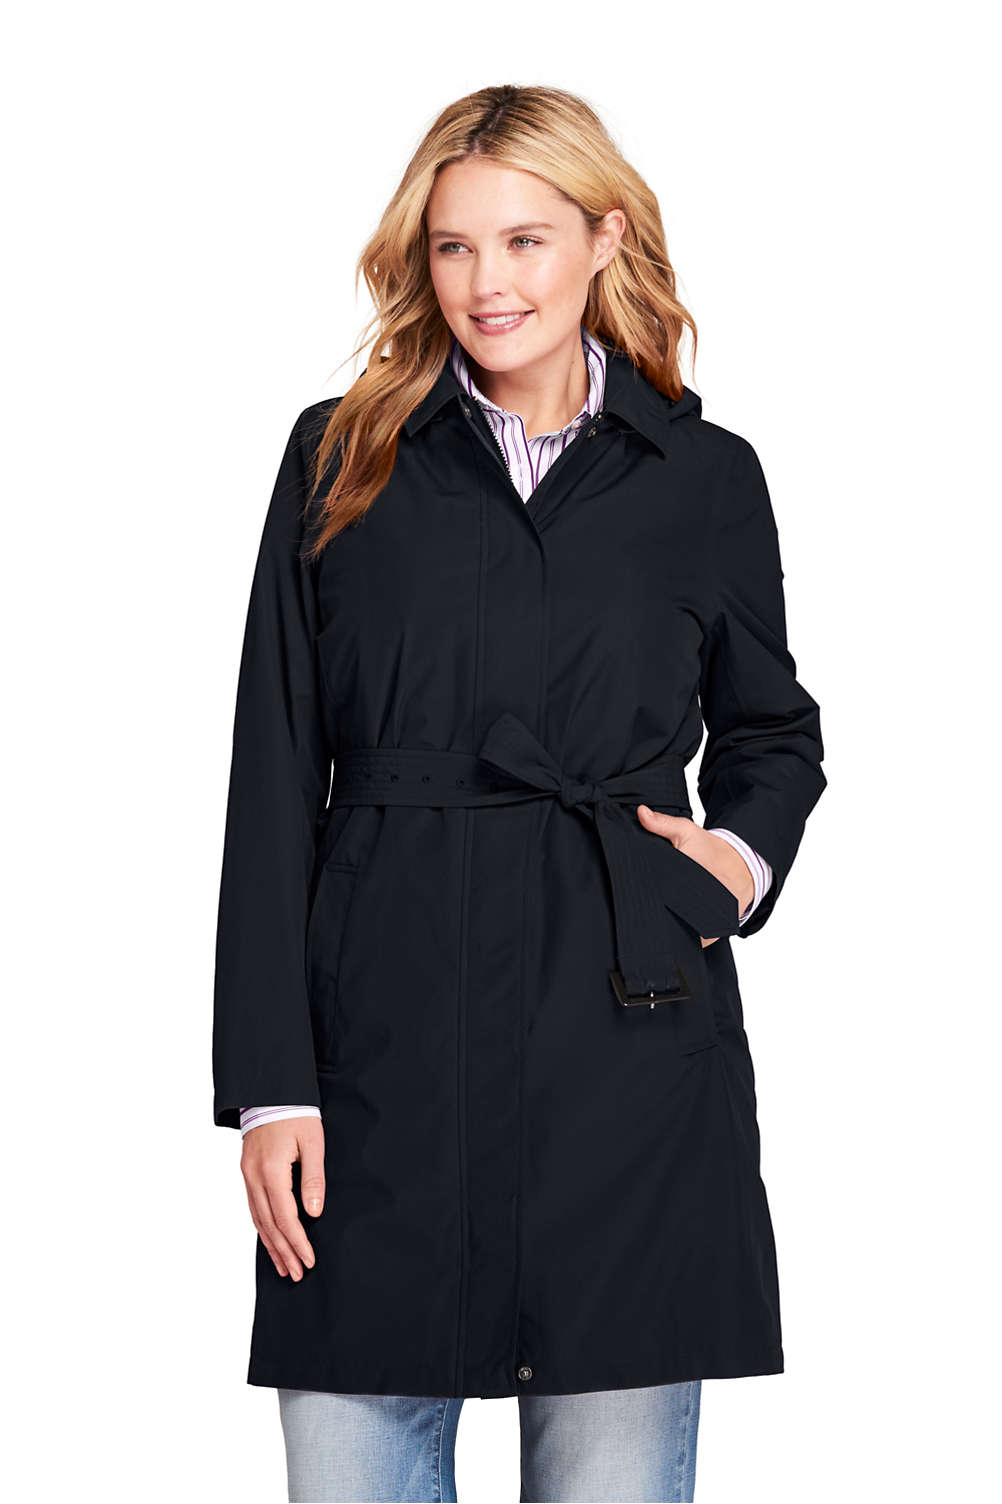 6b0058a552 Women's Plus Size Hooded Waterproof Long Raincoat from Lands' End